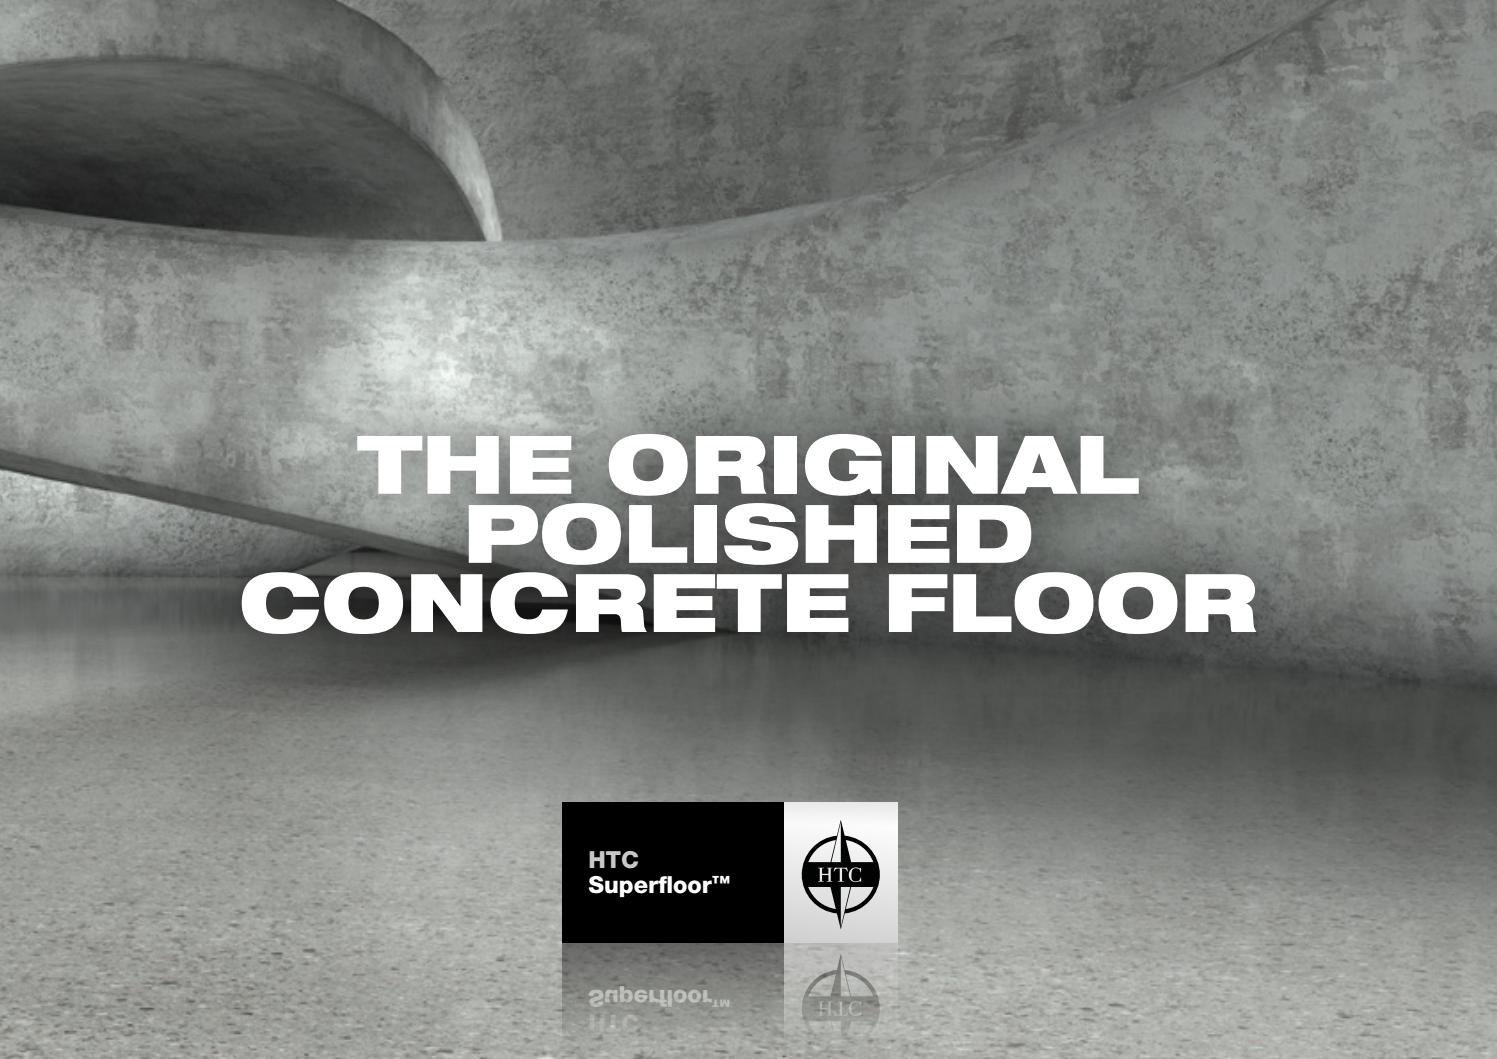 The Original Polished Concrete Floor By Htc Floor Systems